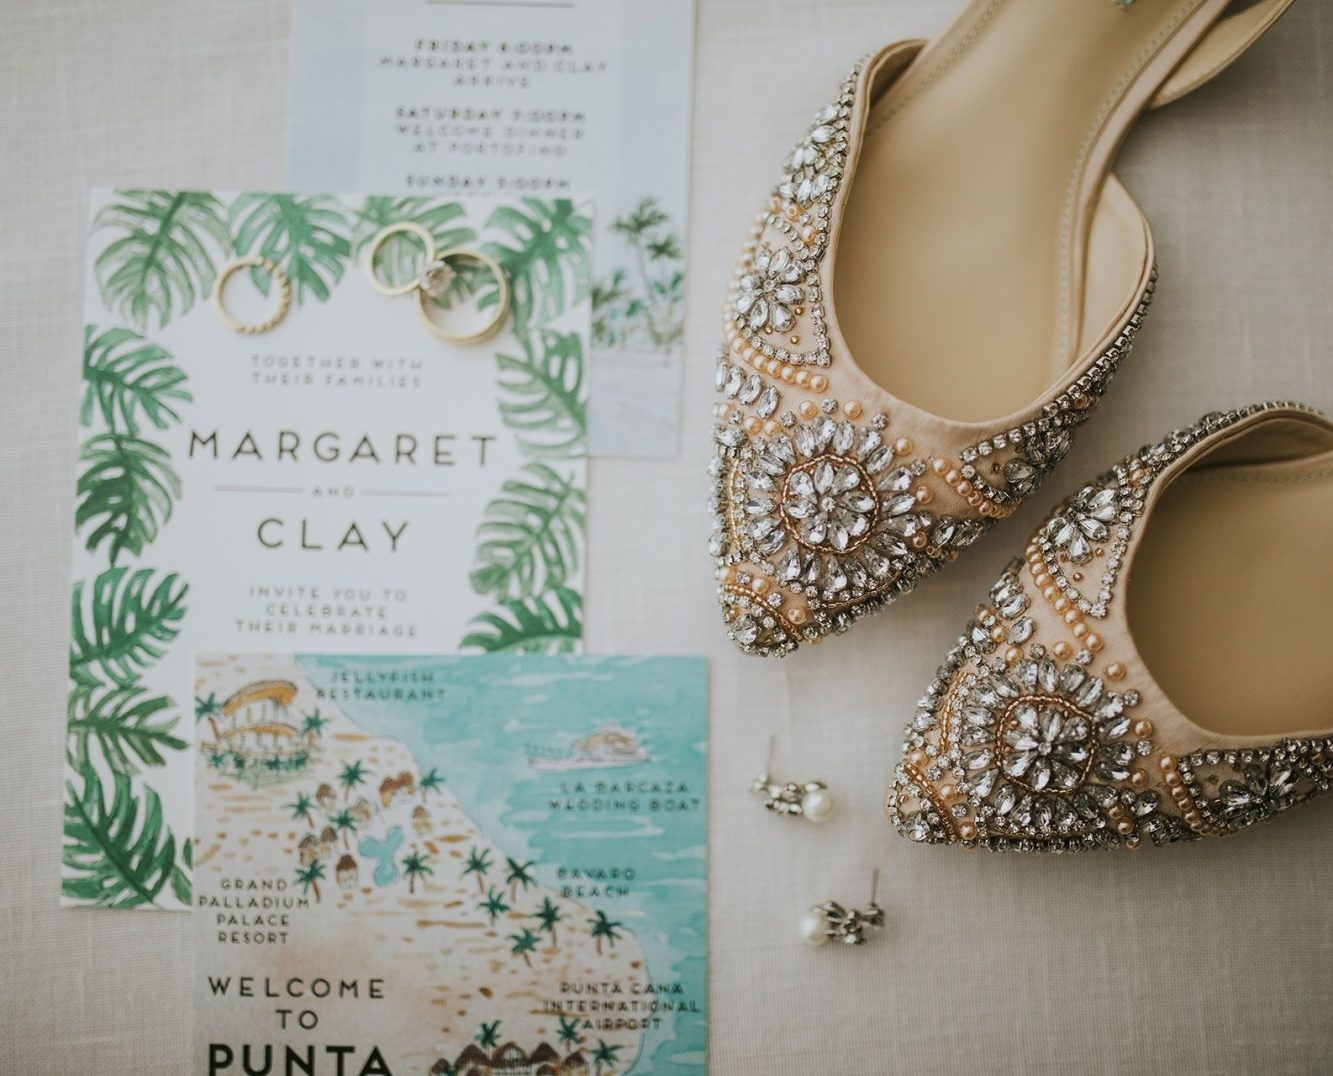 Wedding planner Punta Cana